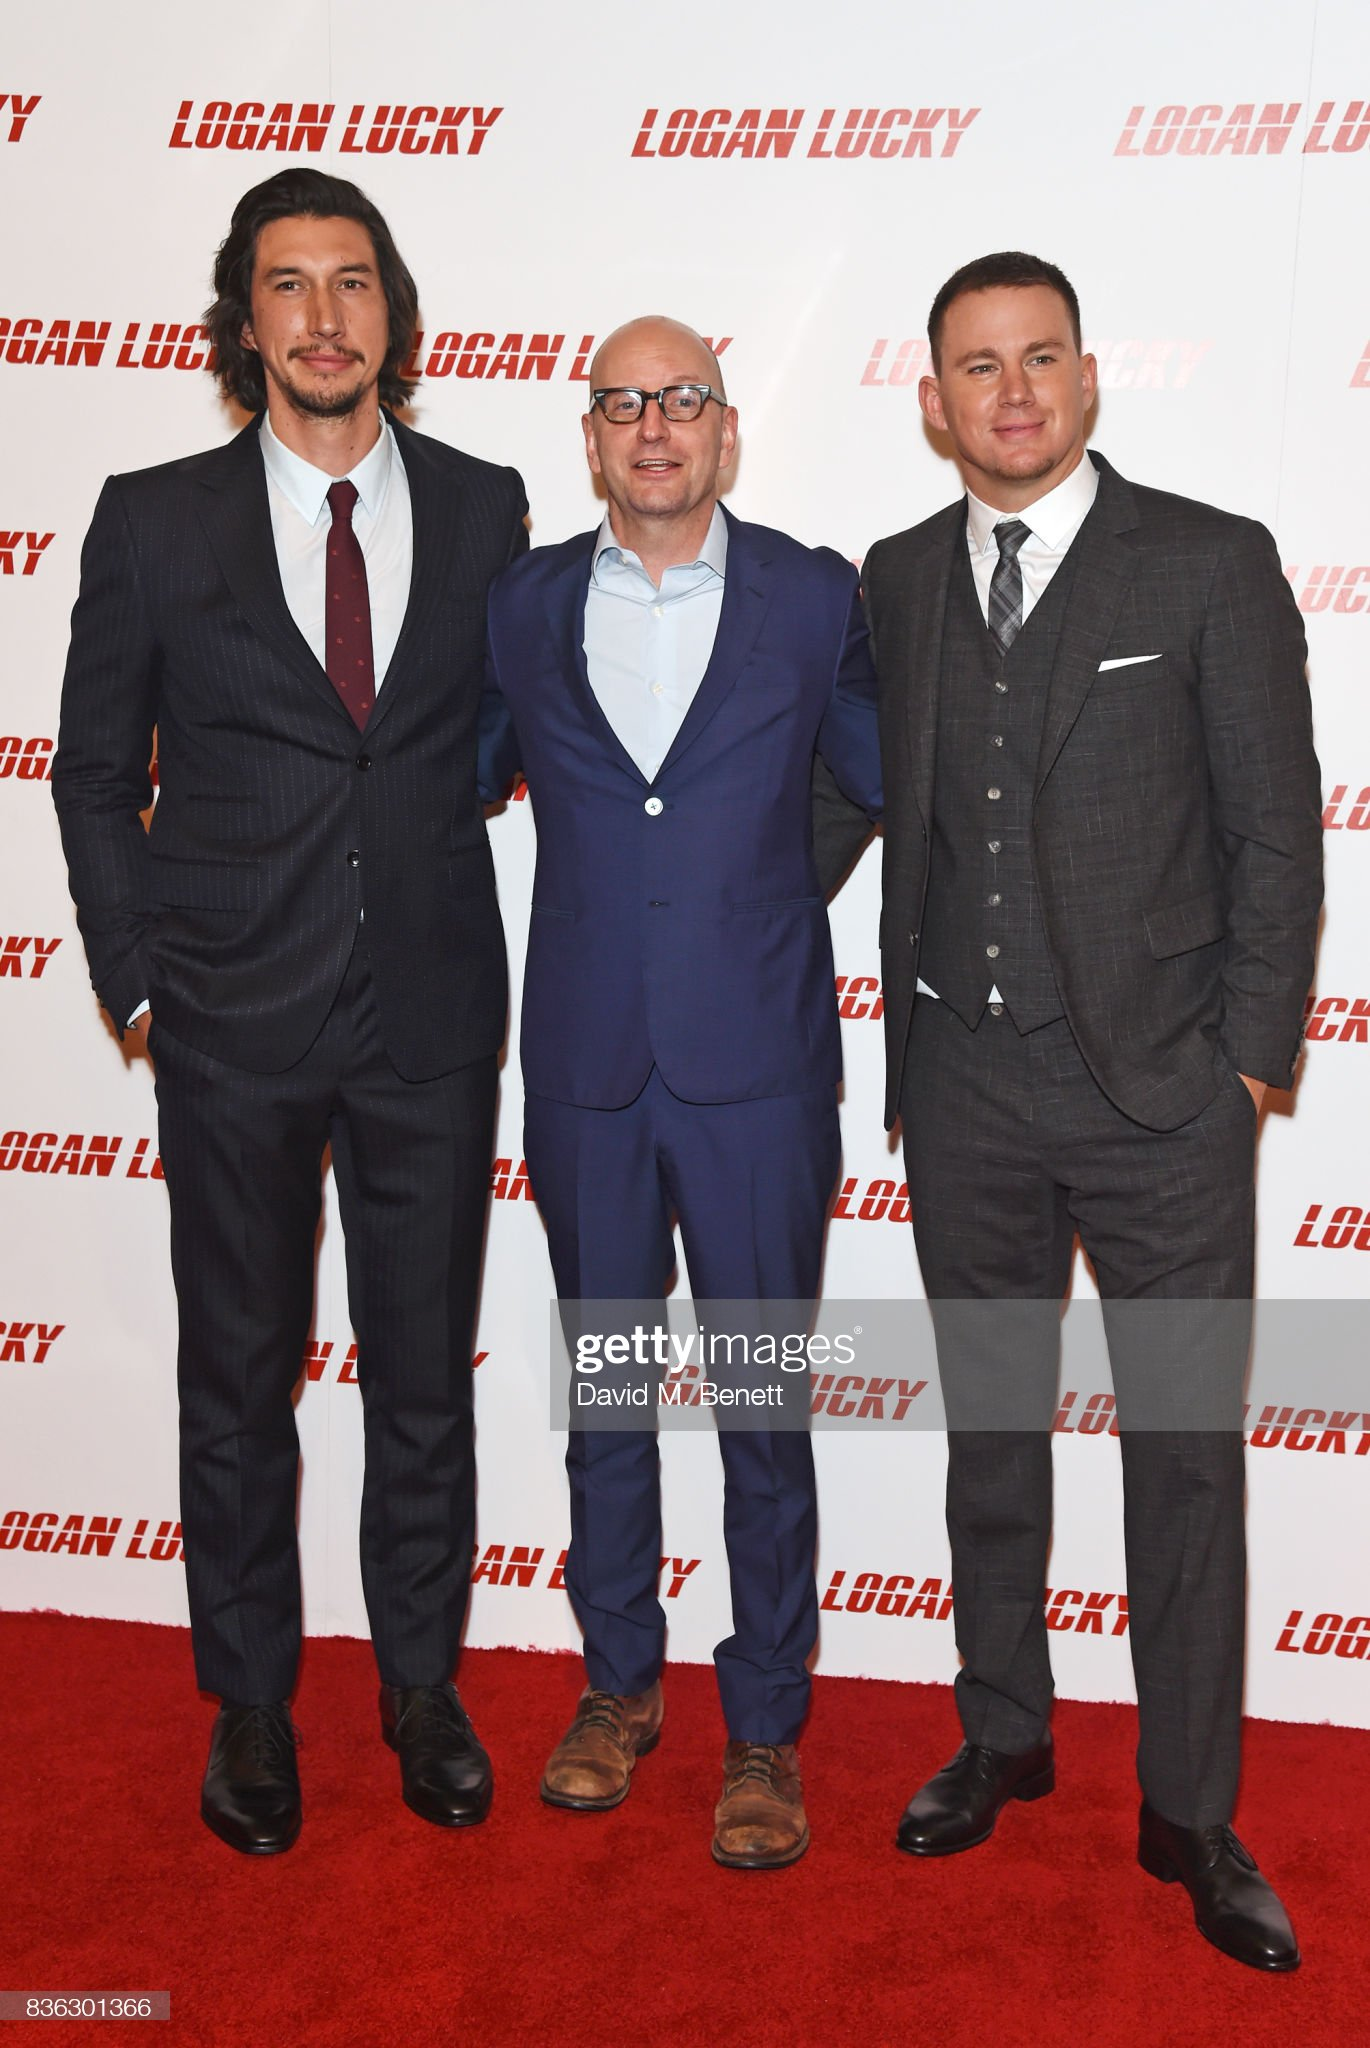 ¿Cuánto mide Adam Driver? - Altura - Real height Adam-driver-director-steven-soderbergh-and-channing-tatum-attend-the-picture-id836301366?s=2048x2048